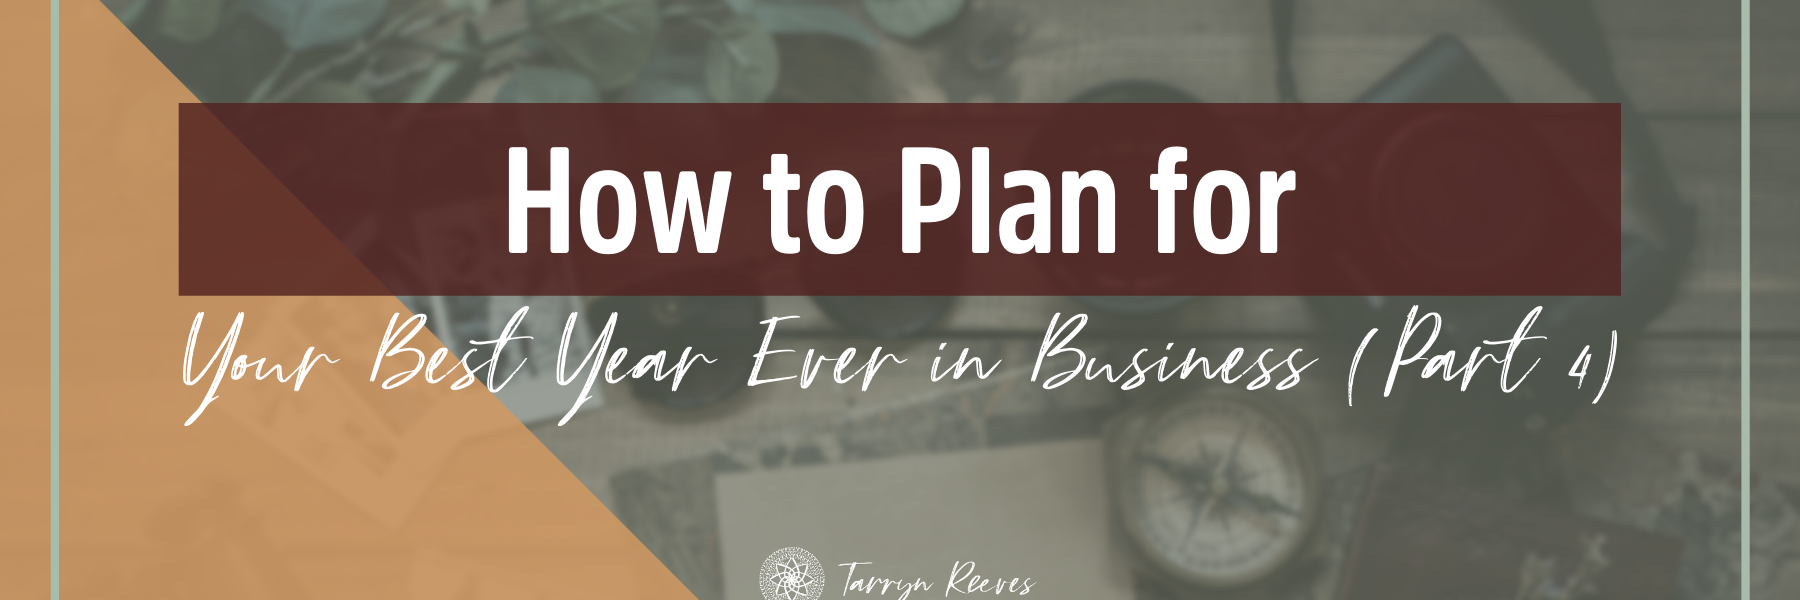 How To Plan For Your Best Year Ever In Business Part 4